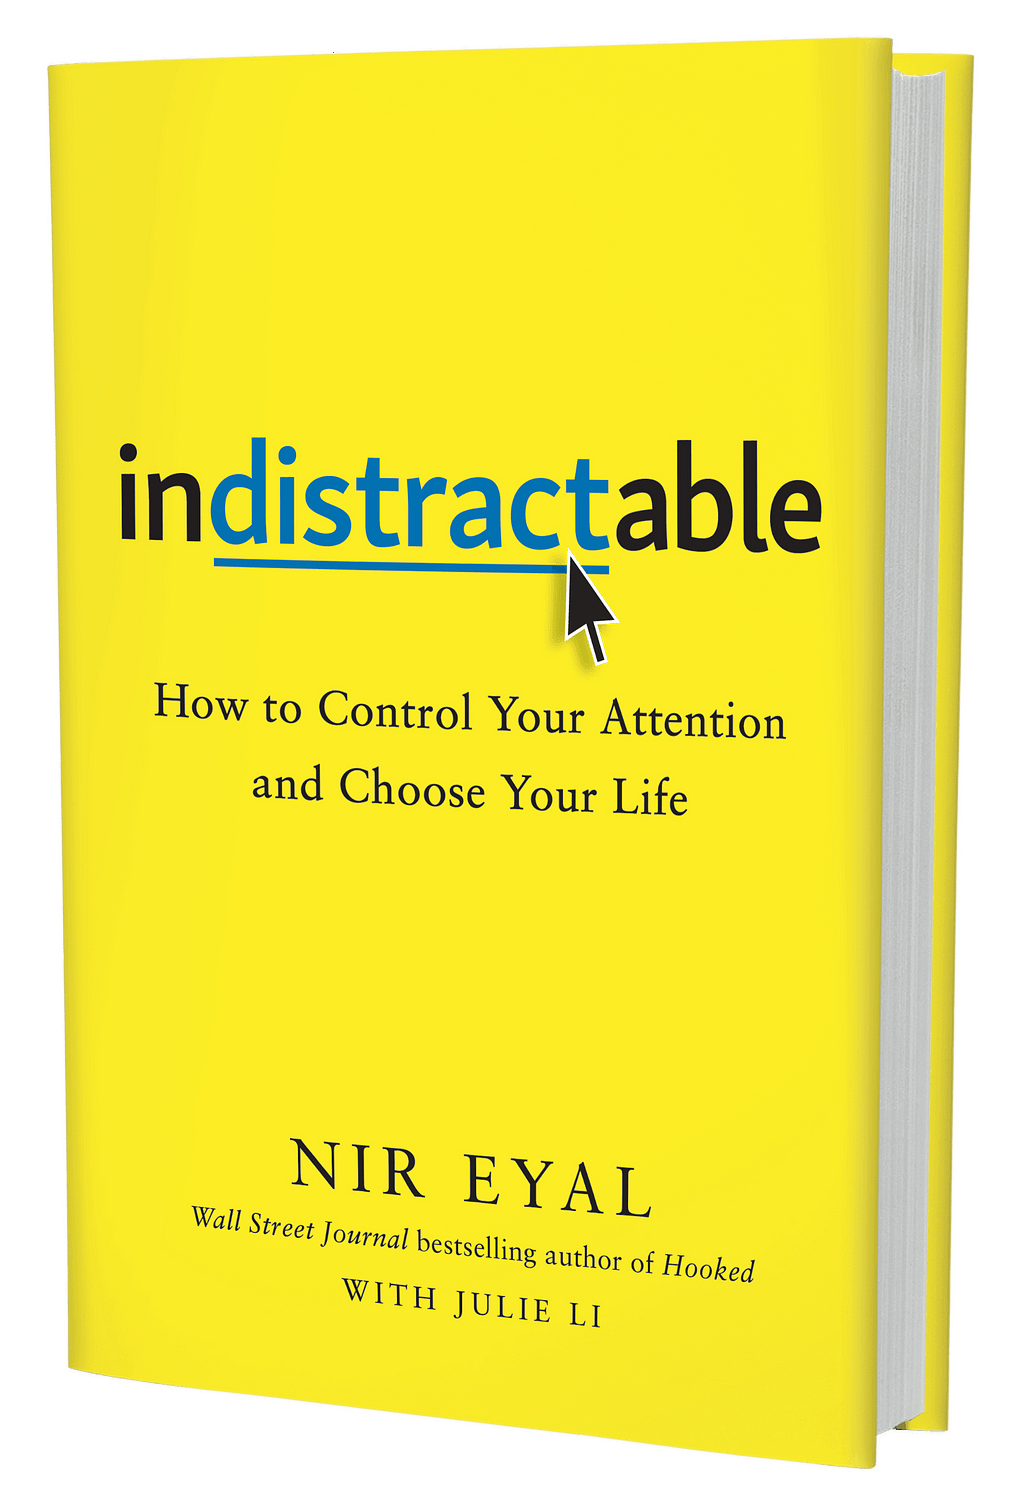 Indistractable-Control-Your-Attention-Choose-Your-Life-Nir-Eyal-3D-cover